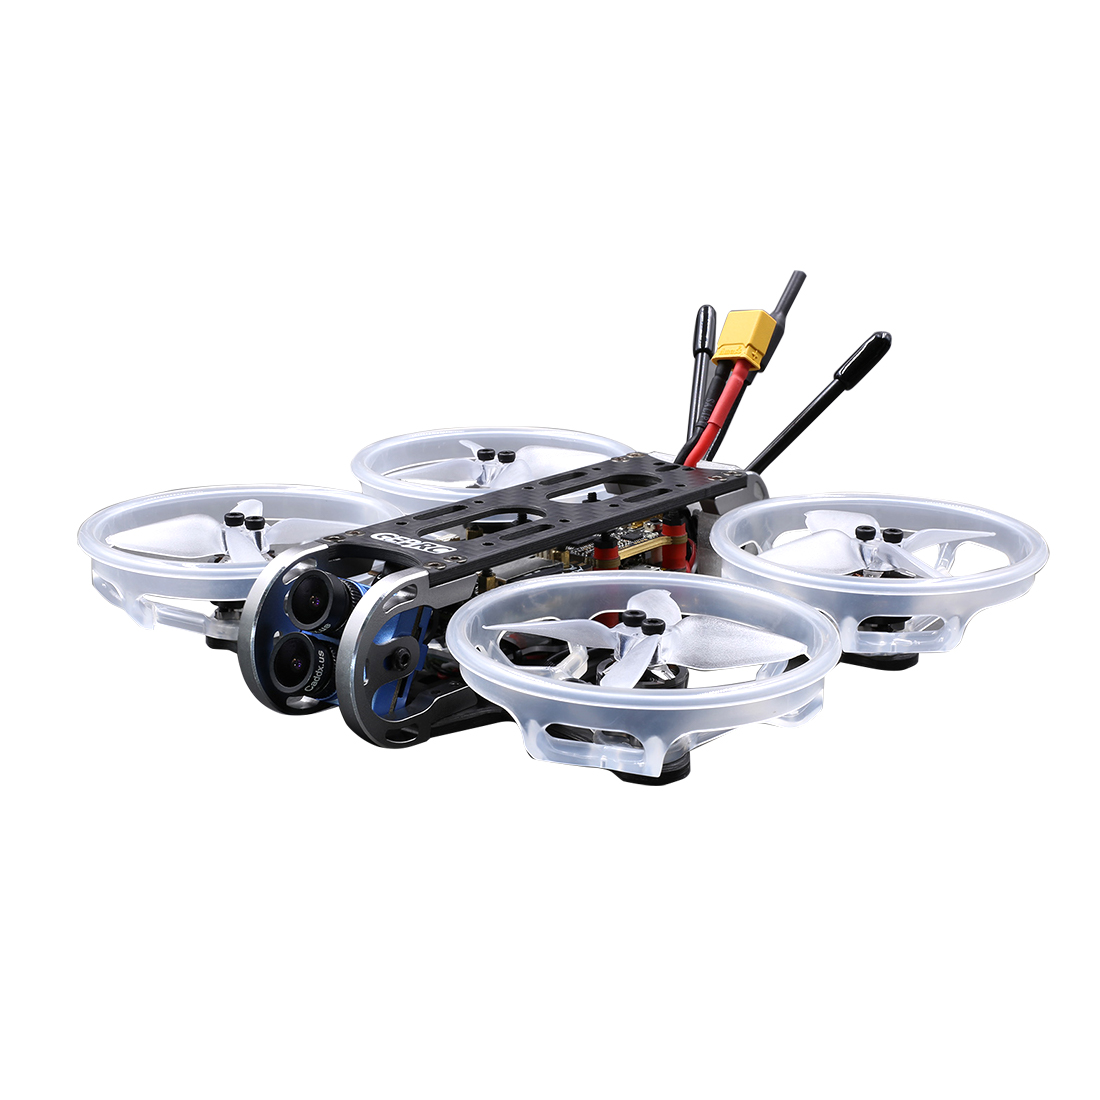 GEPRC CinePro 4K BNF/PNP FPV Racing Drone 4S Compatiable with F722/F405 Flight Controller 115mm 5.8g 48CH 500mW VTX